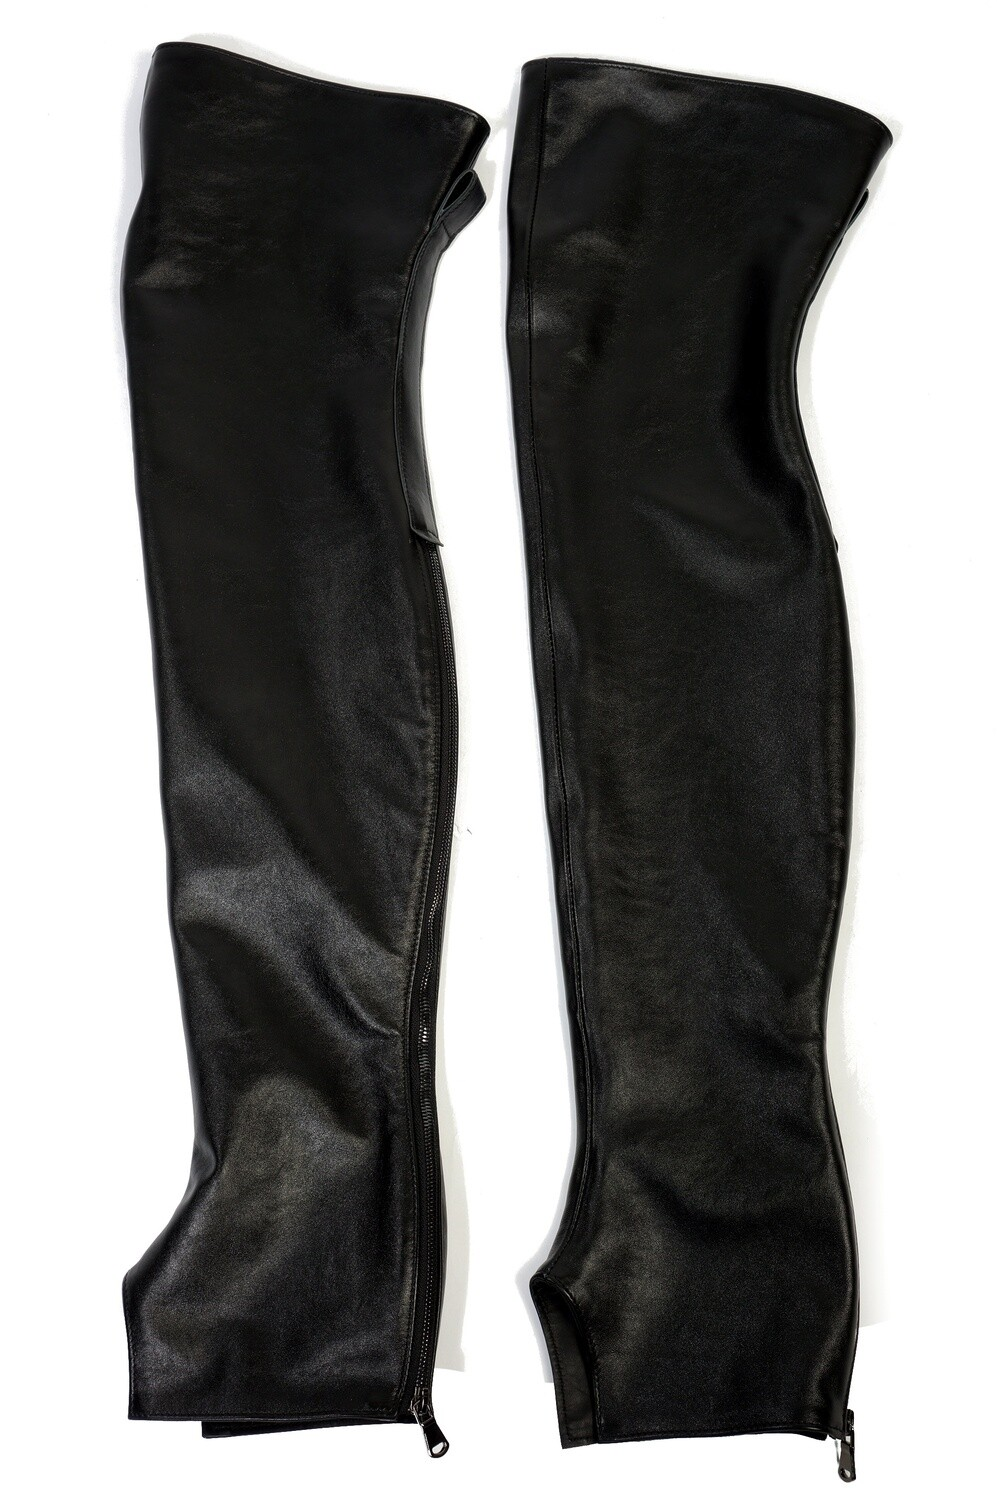 Women's leather high gaiters to the middle of the thigh